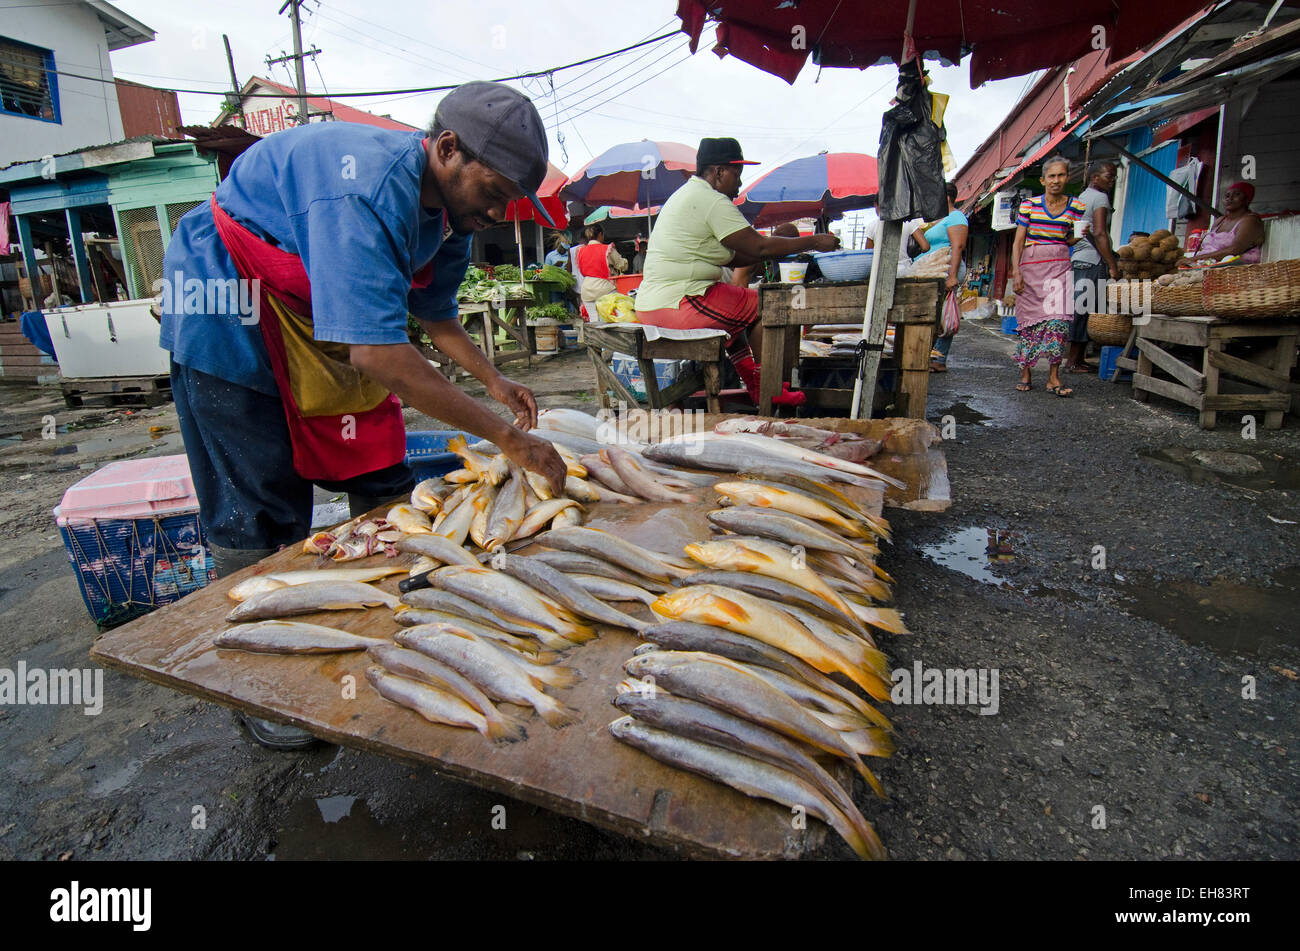 Fish stall in Stabroek Market, Georgetown, Guyana, South America - Stock Image